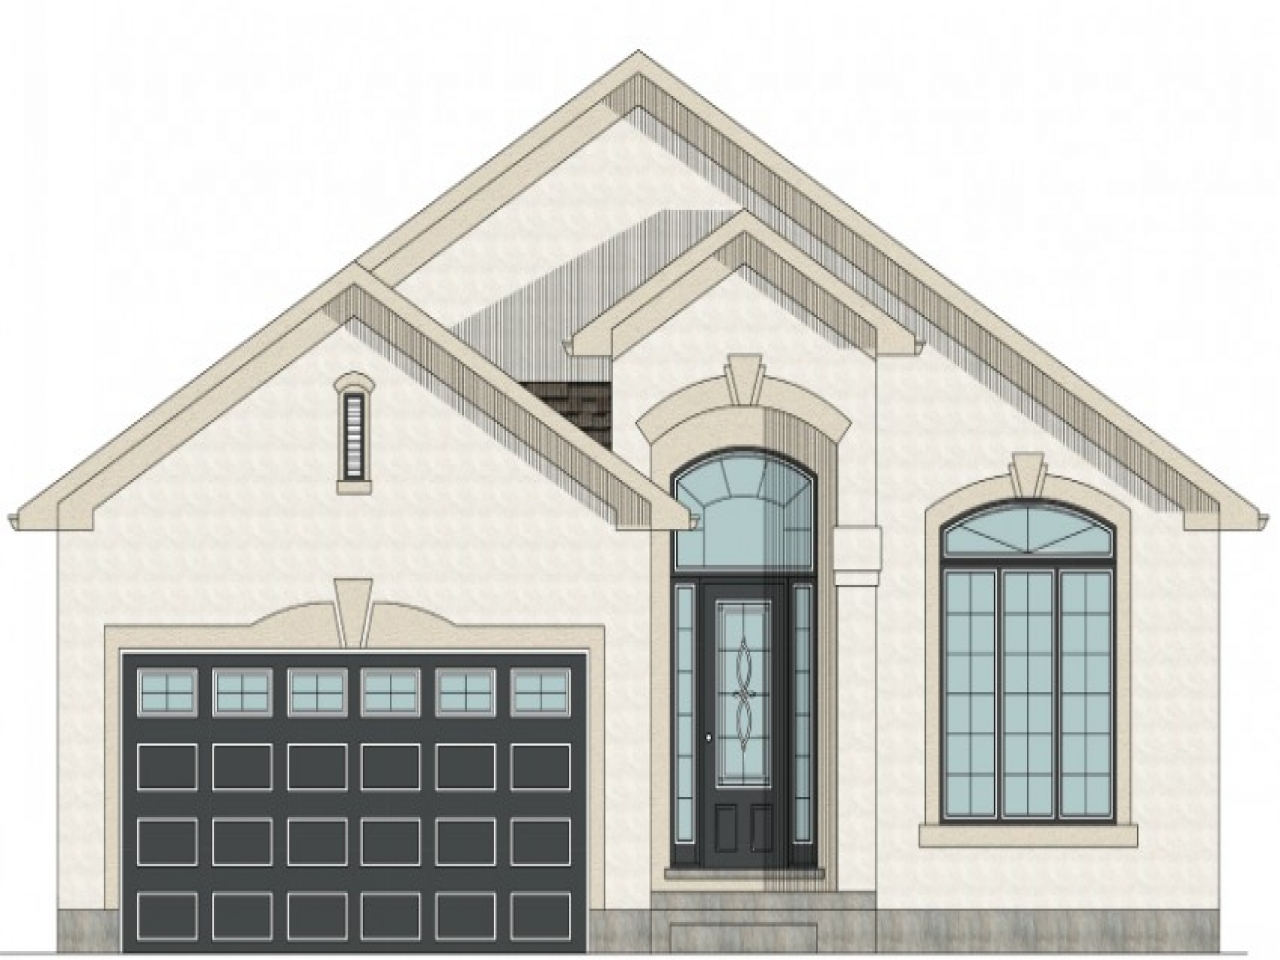 Custom bungalow house plans canadian bungalow house plans for Canadian house plans bungalow